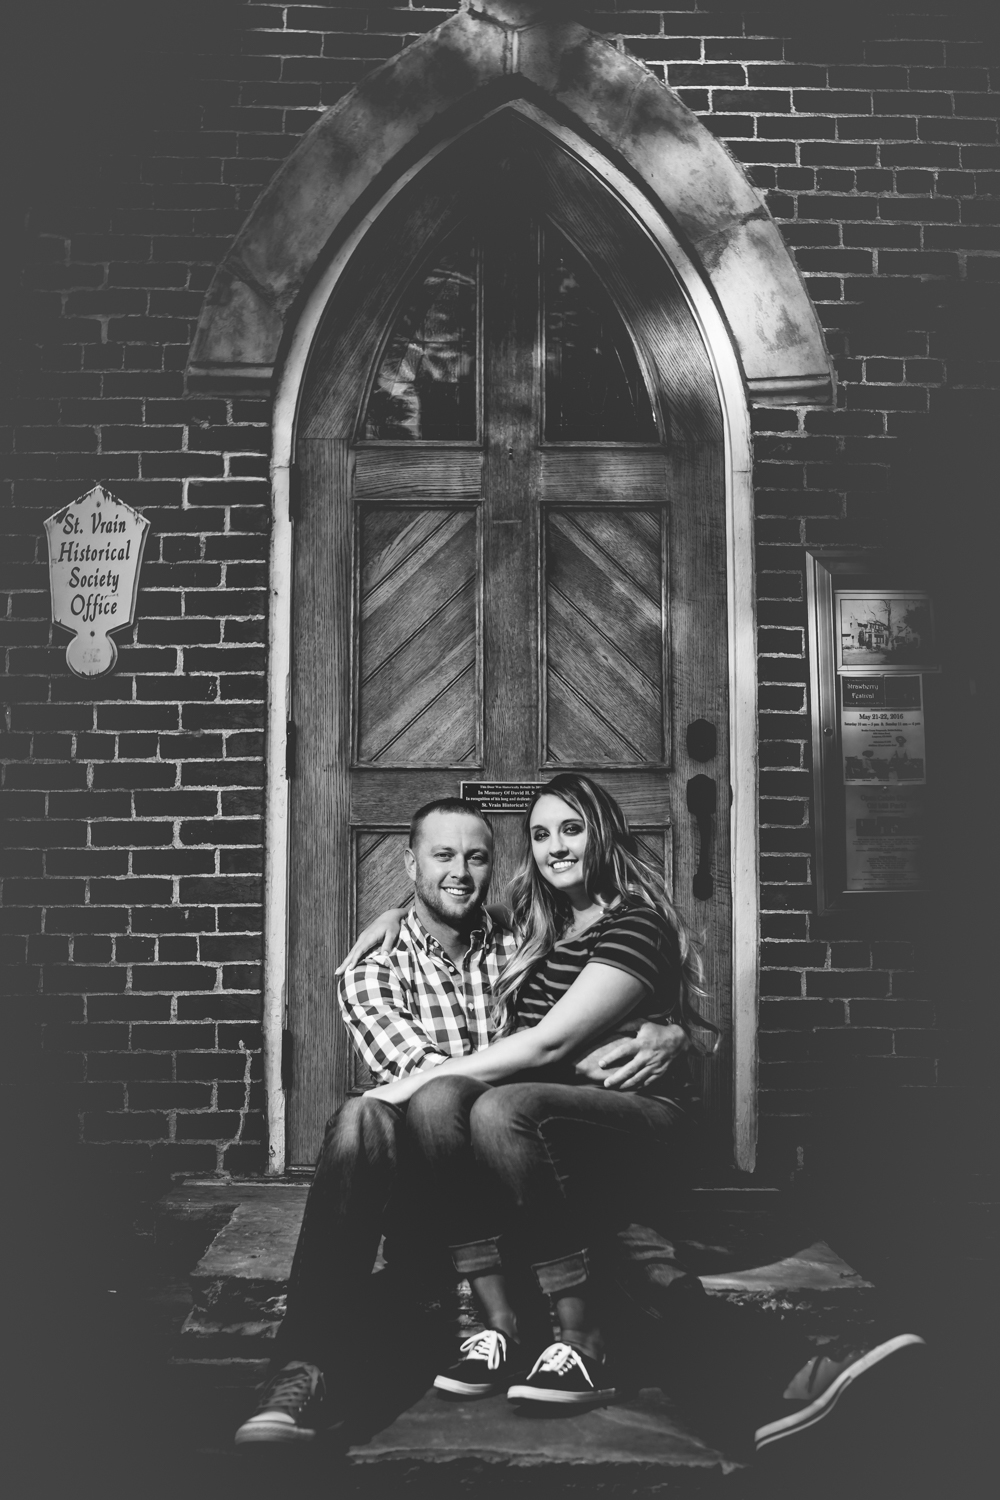 Old church door engagements in Longmont, Colorado. Take by Jared M. Gant